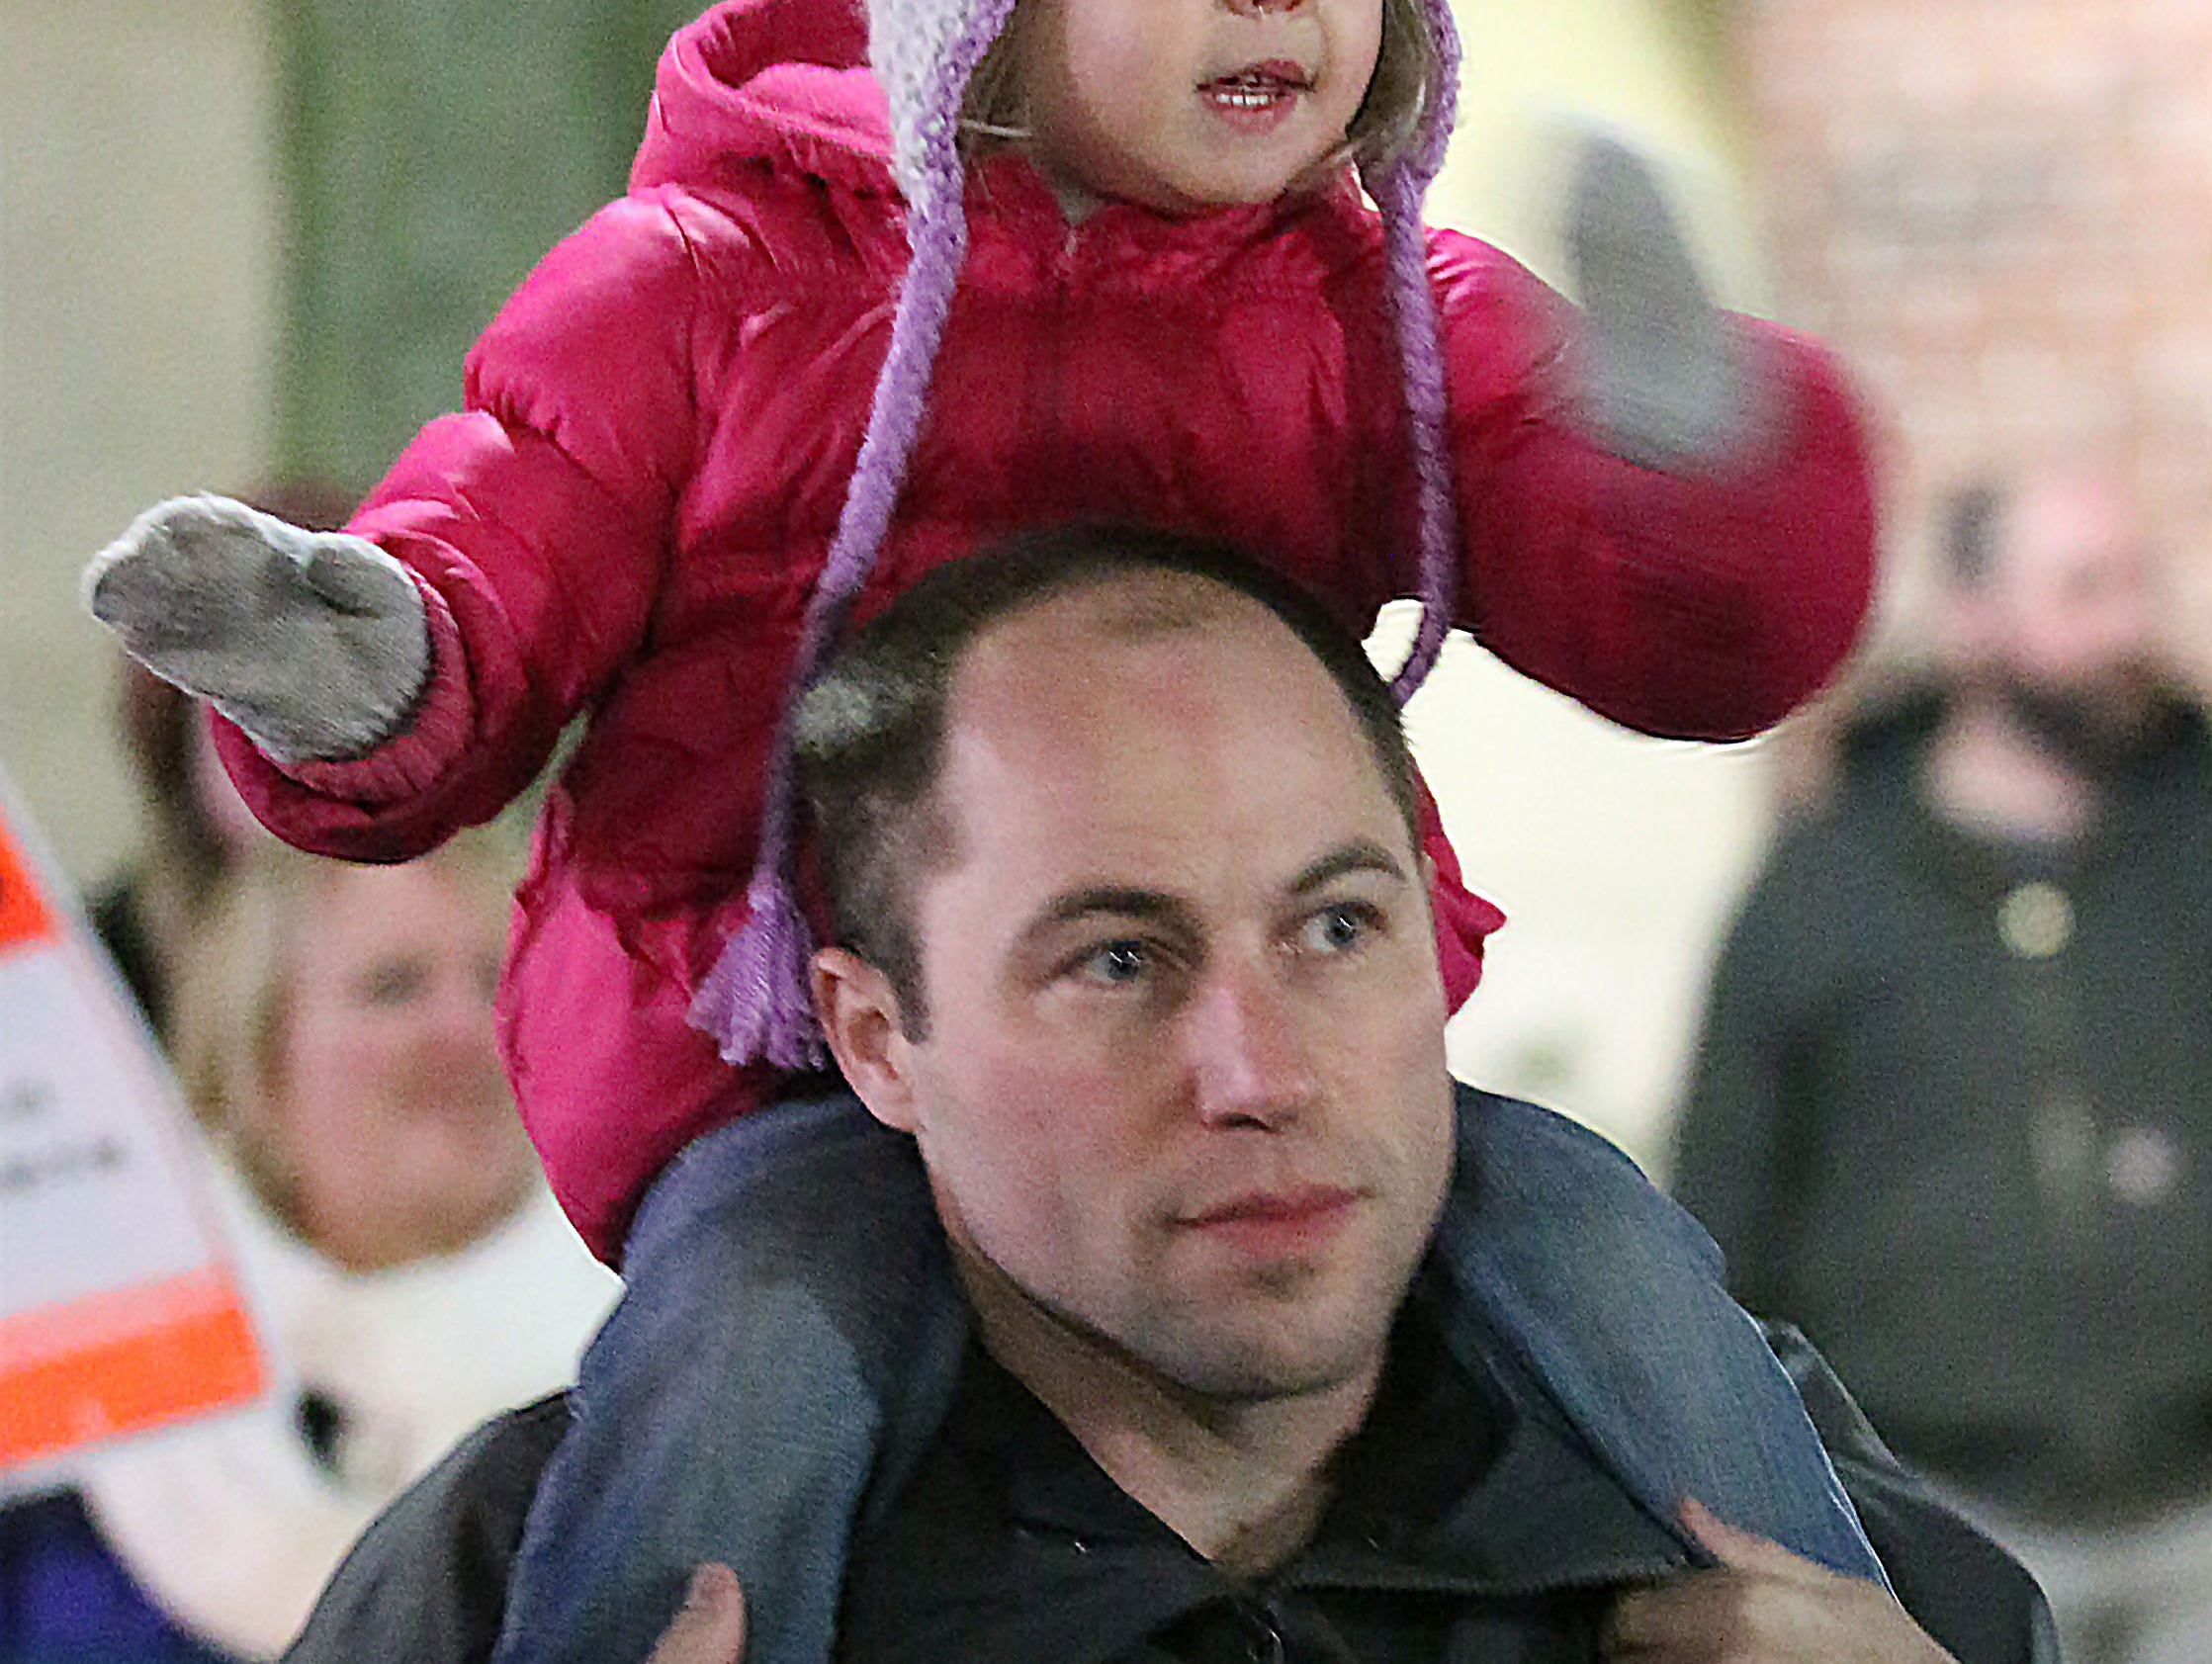 Breanna Otte, 2, waves to the parade from atop her dad Jon's shoulders at the Plymouth Christmas Parade, Friday, November 23, 2018, in Plymouth, Wis.